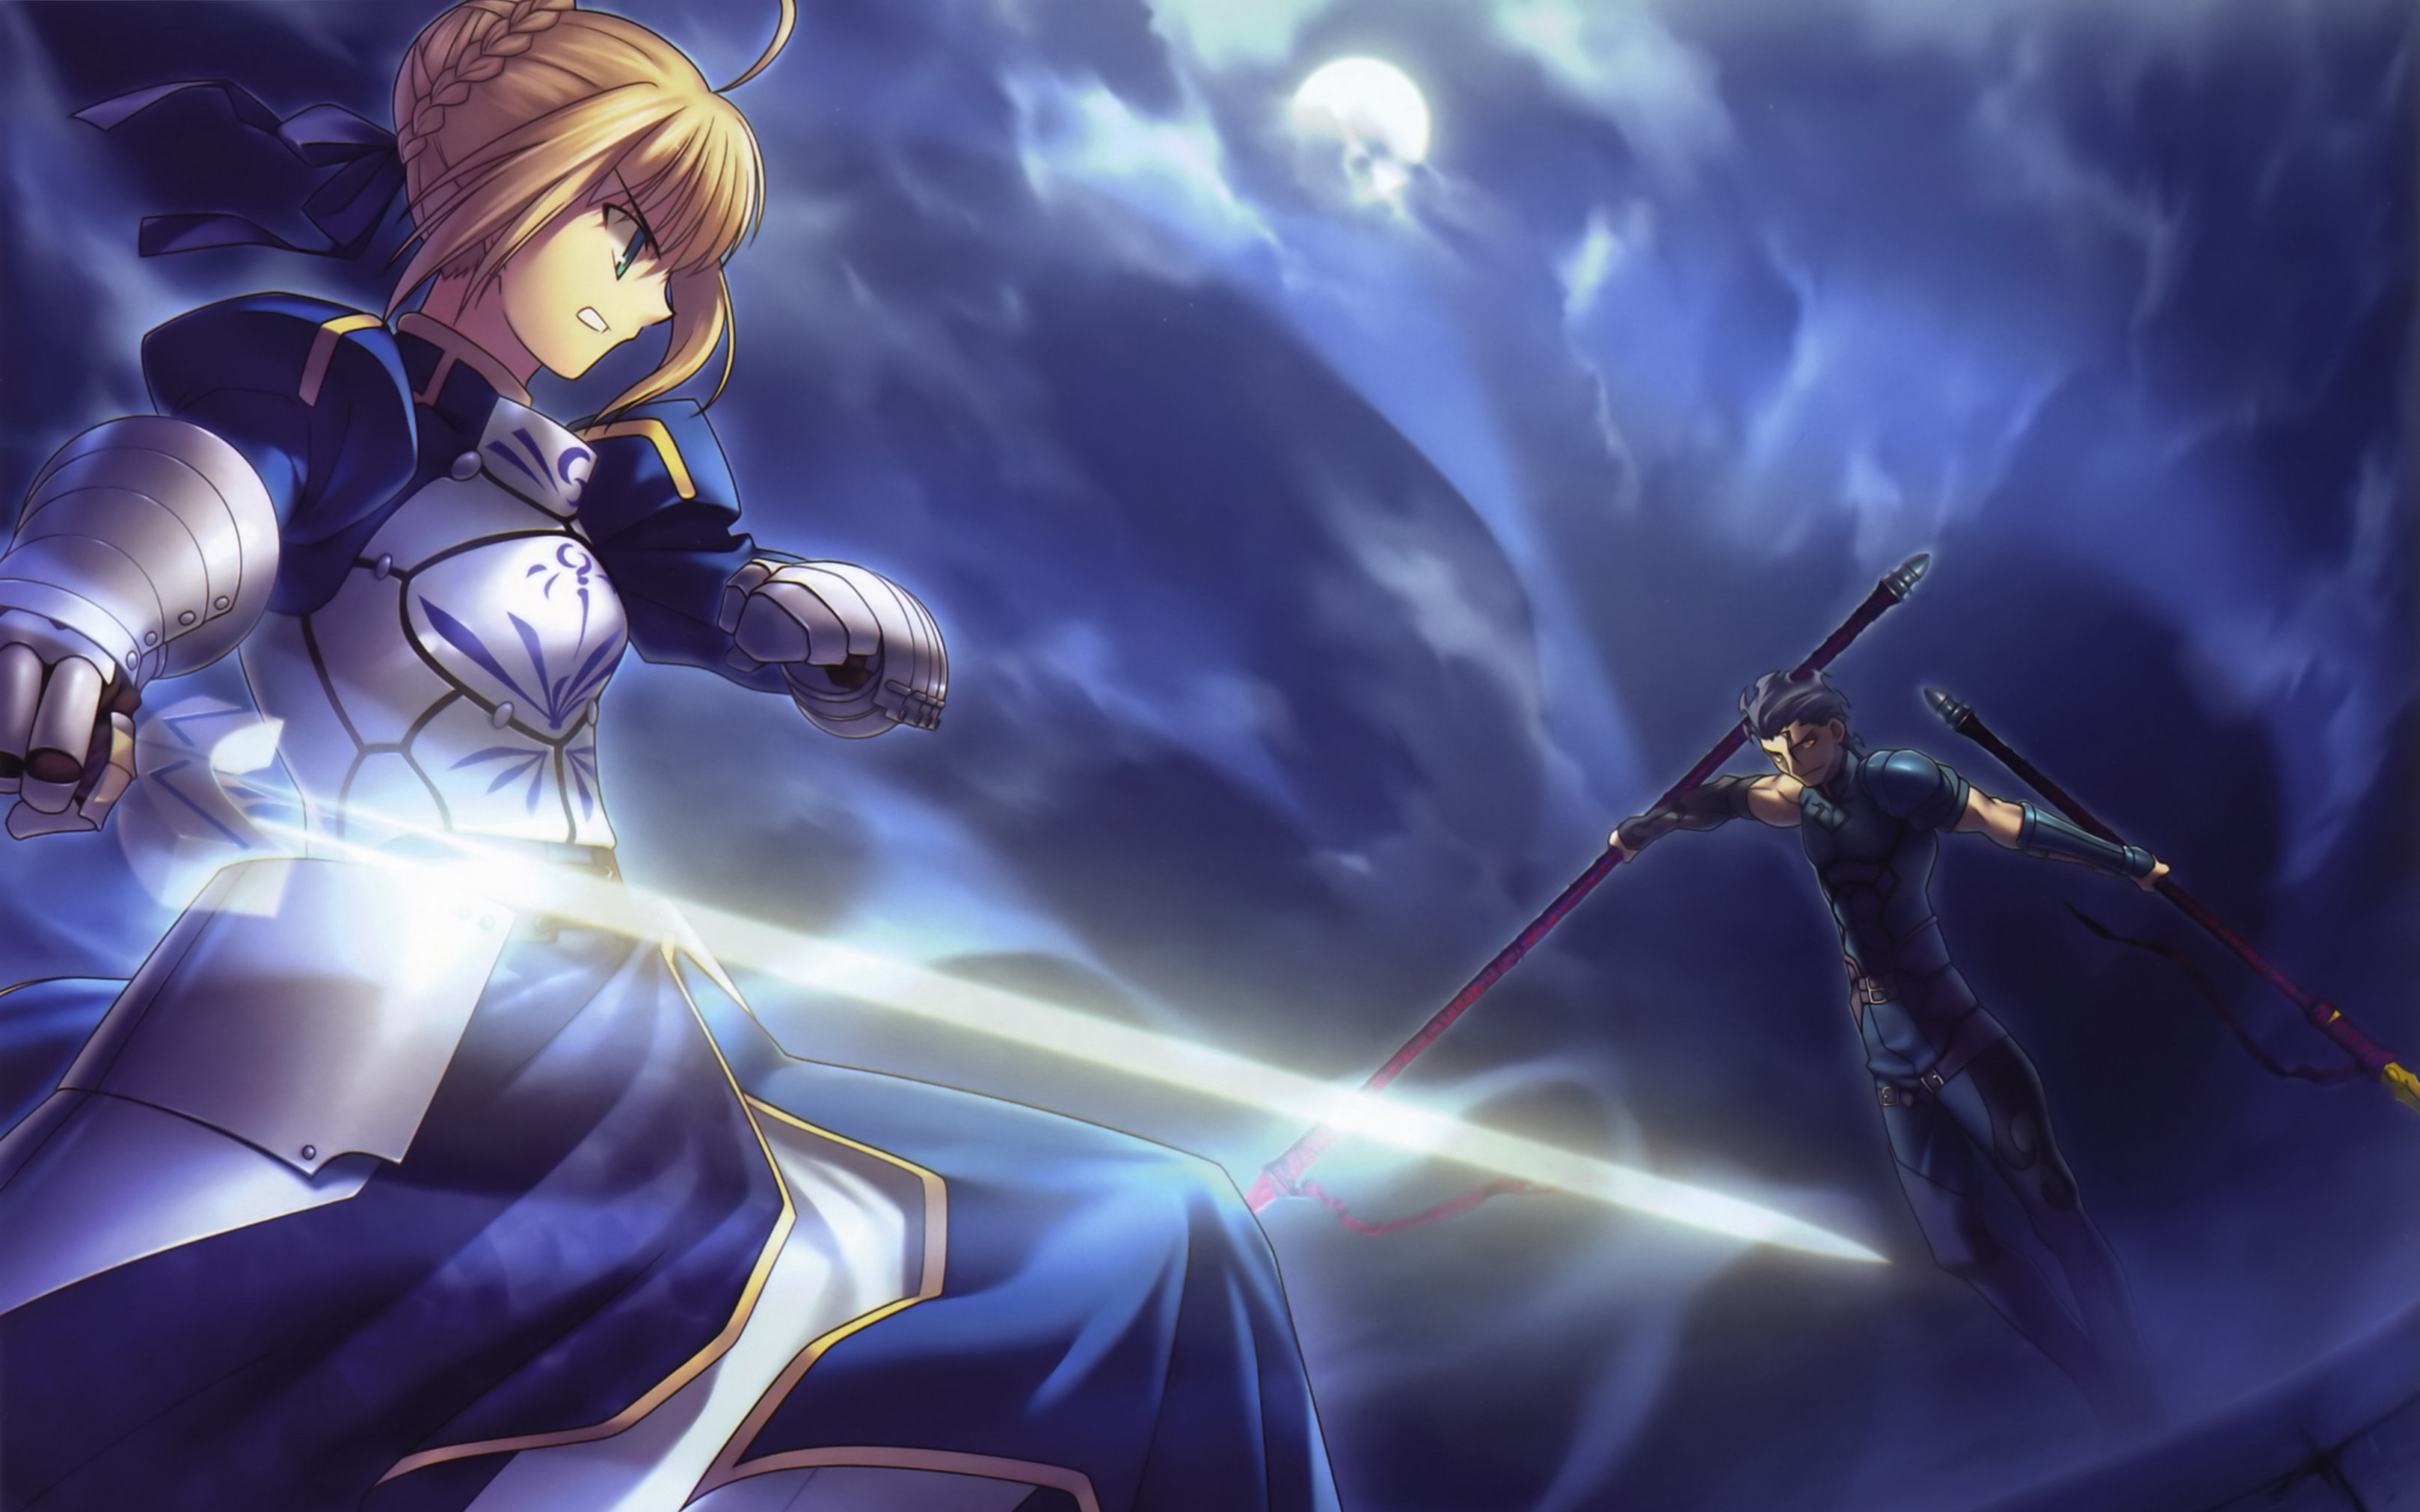 Fate/stay Night Wallpaper 21 Anime Background. Fate/stay Night Wallpaper 21  Anime Background